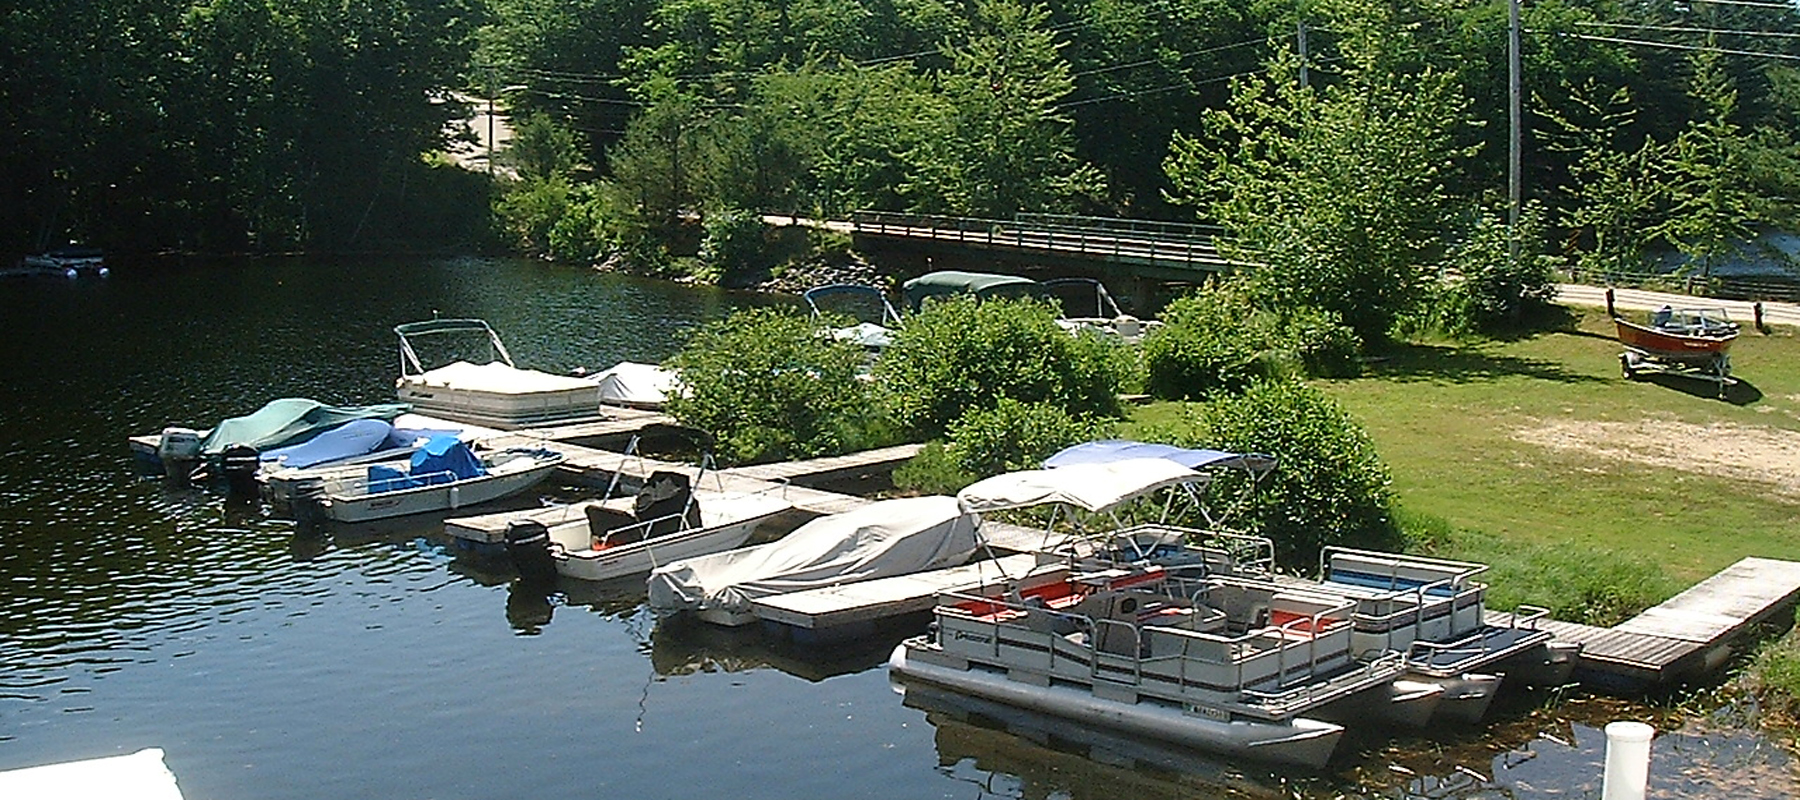 Kezar lake marina lovell maine for Fishing boat rentals near me